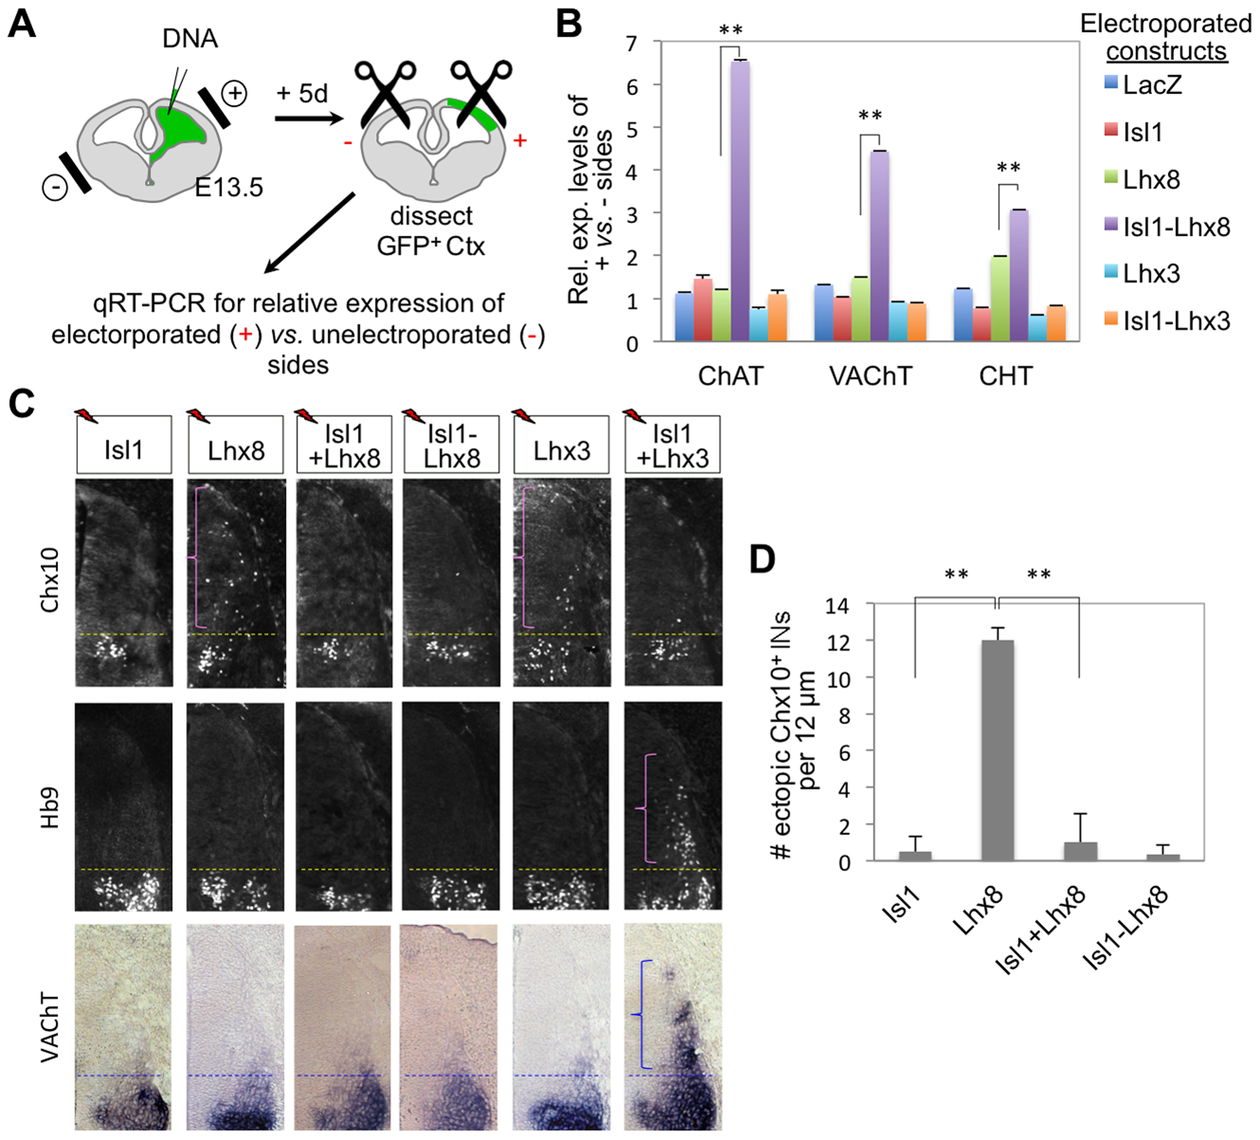 Isl1-Lhx8 induces the expression of cholinergic gene battery in the forebrain, but not in the spinal cord.